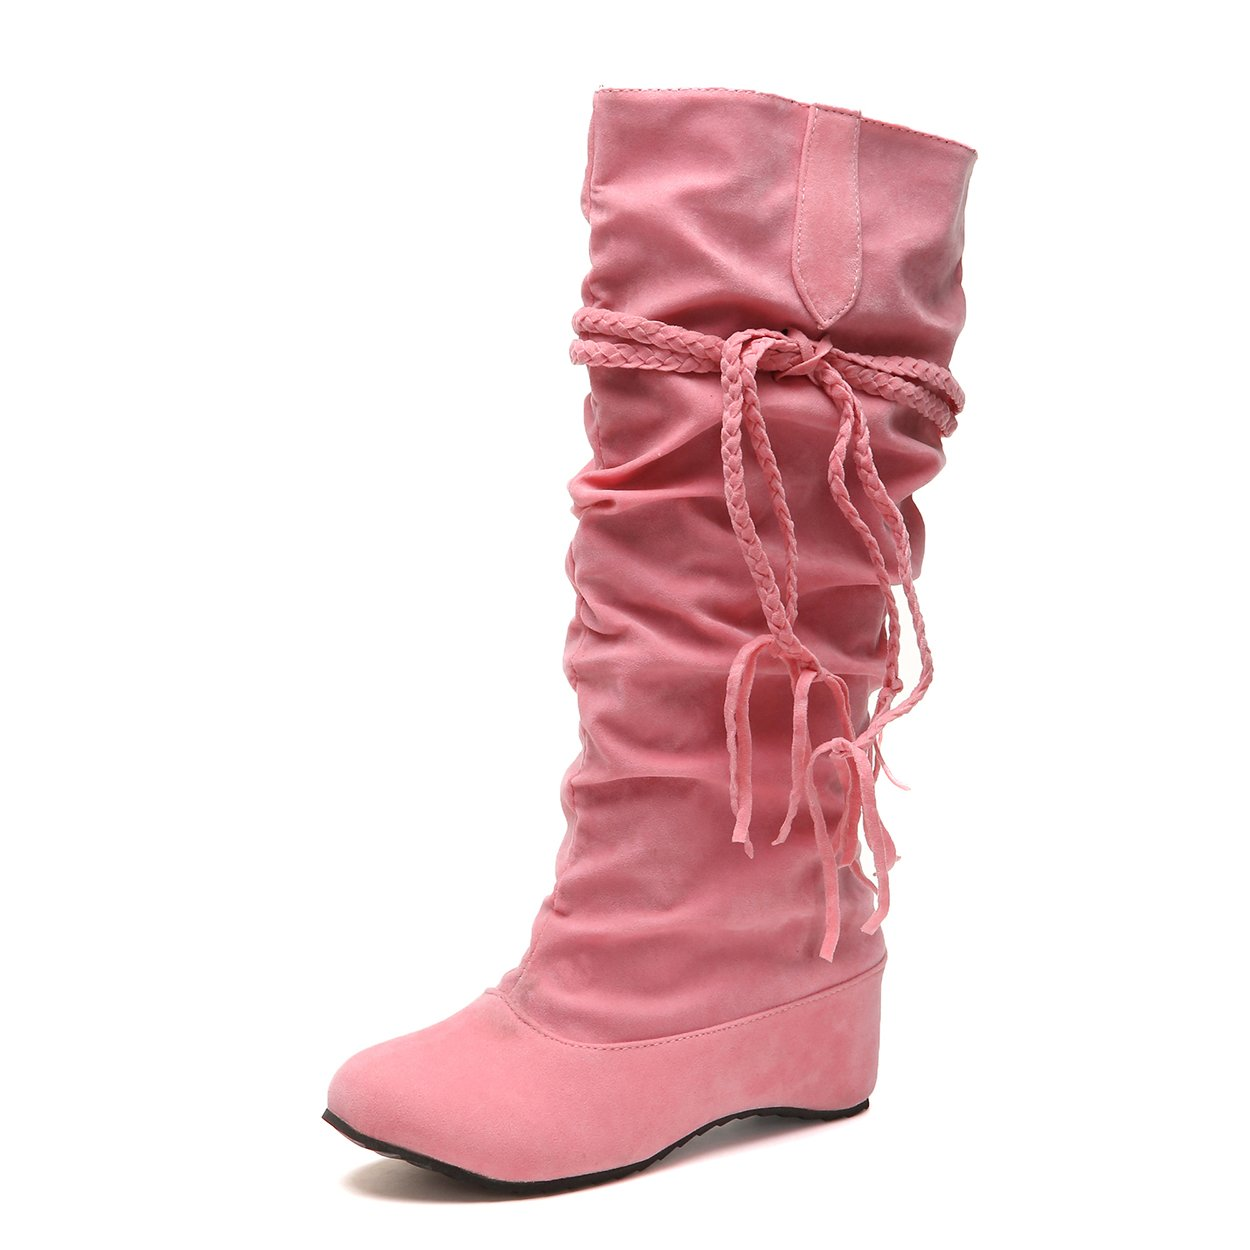 SNIDEL Womens Knee High Boots Flat Low Heel Pull on Warm Autumn Slouch Booties Strappy Shoes Pink 8 B (M) US